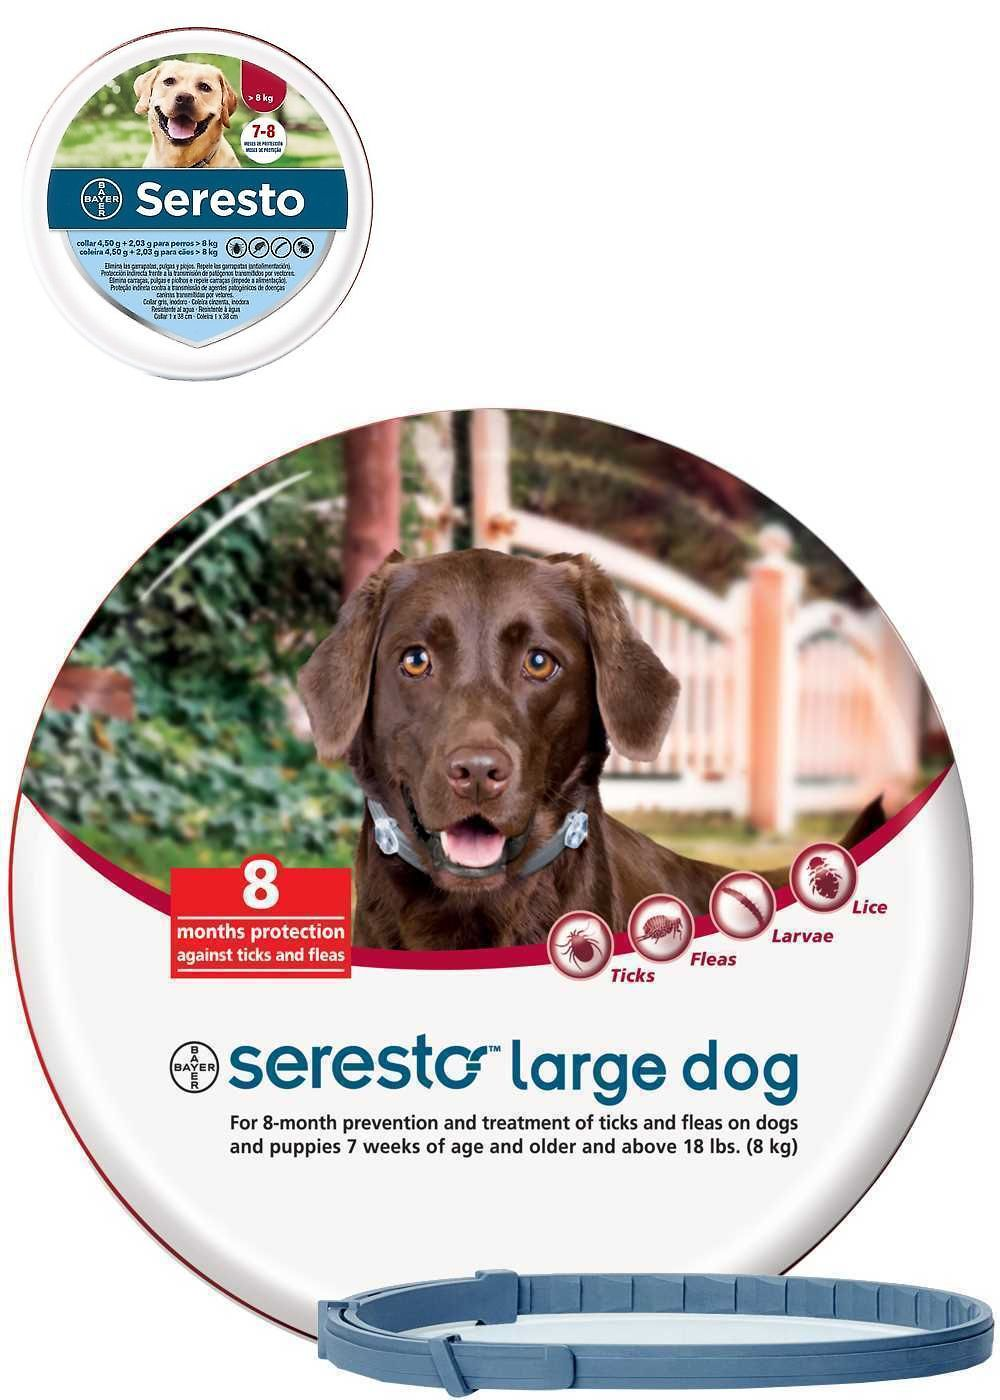 Collars 63057 2018 Bayer Seresto Flea And Tick Collar For Large Dogs Over18lbs 8kg Buy It Now Only 25 59 On Ebay Large Dogs Flea And Tick Fleas